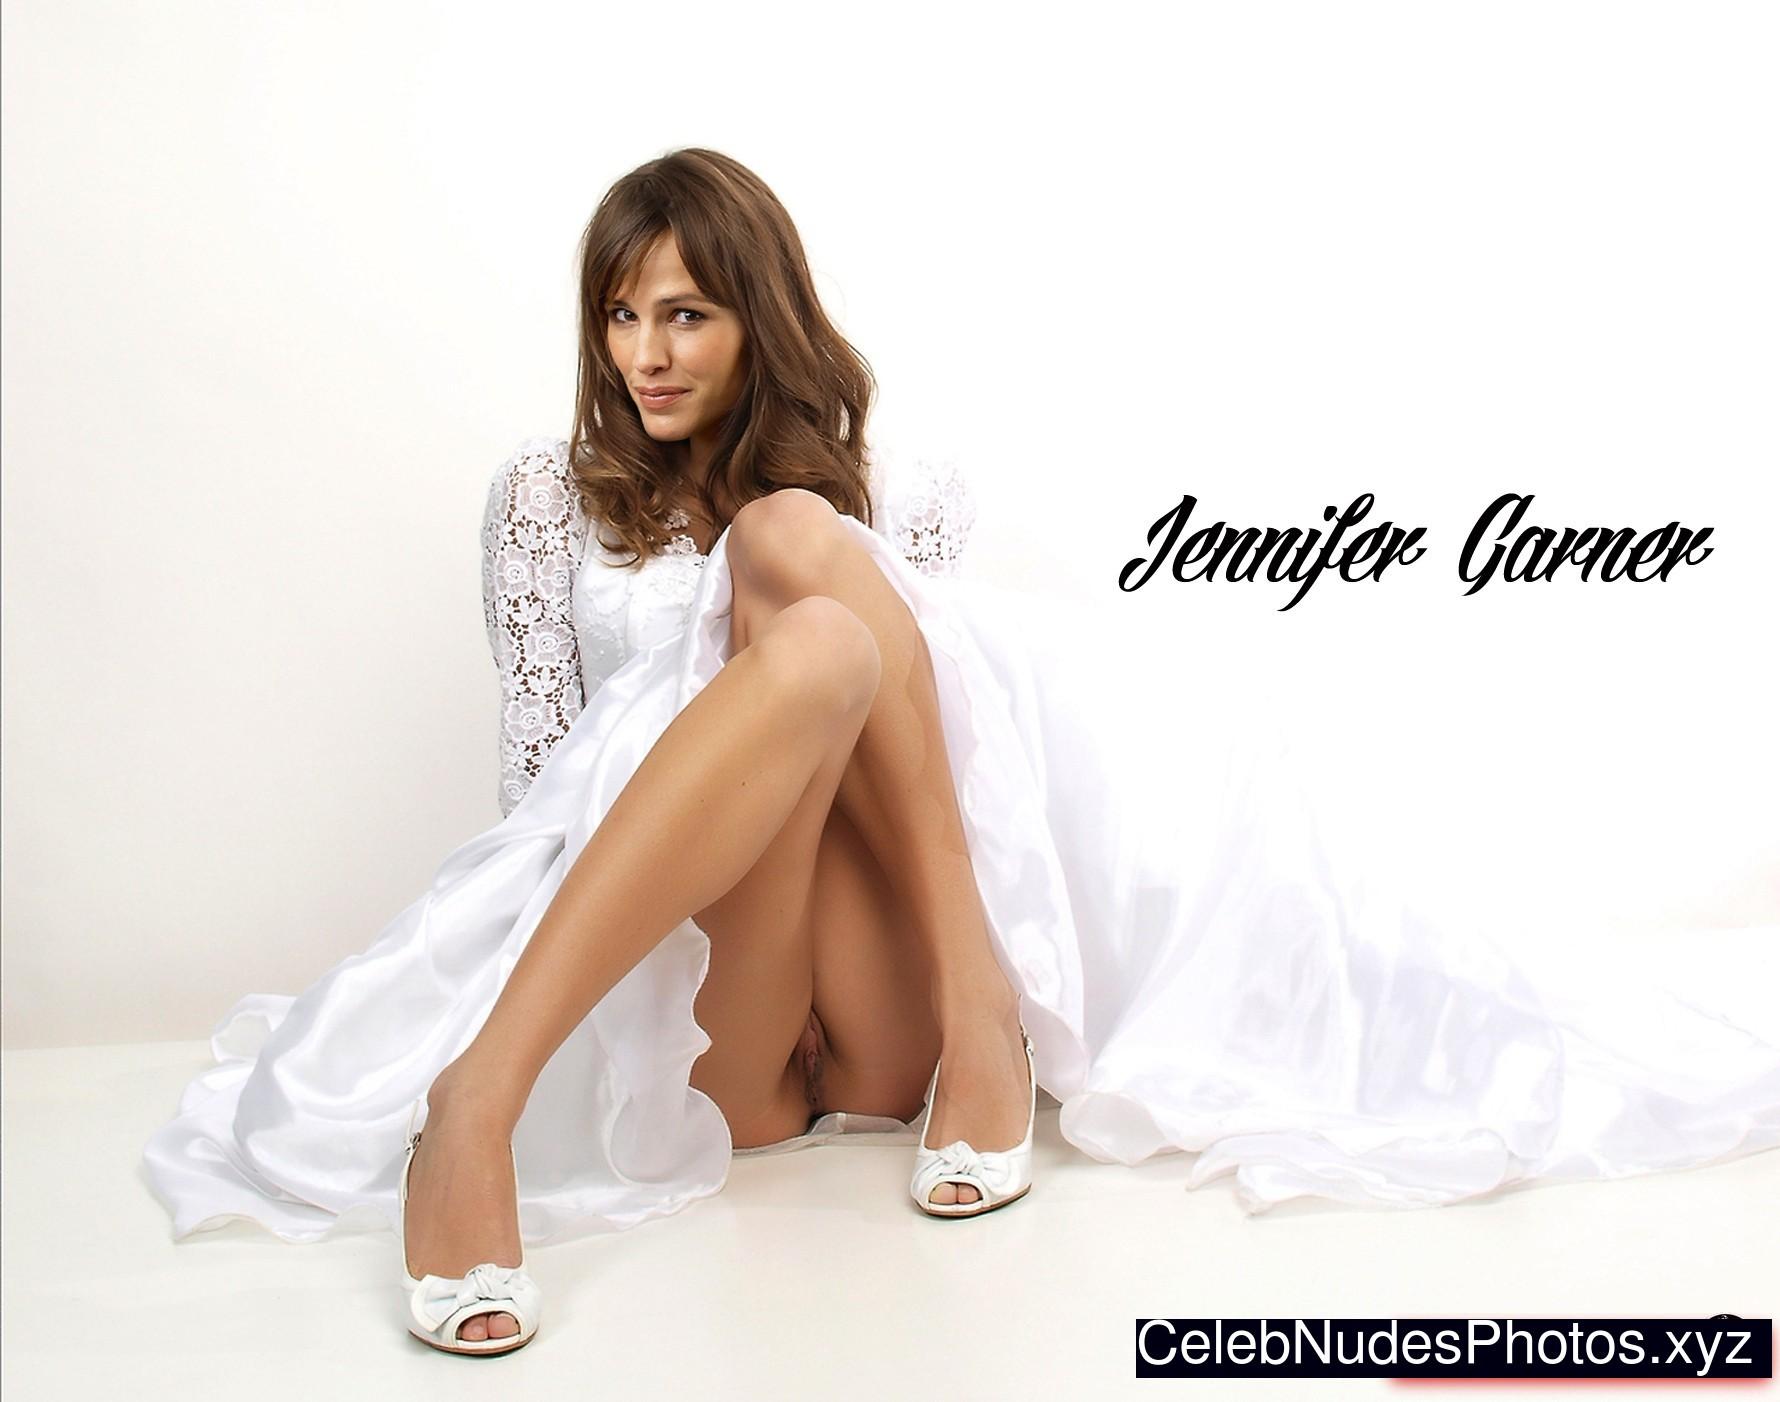 Jennifer Garner Naked Celebrity Pic sexy 13